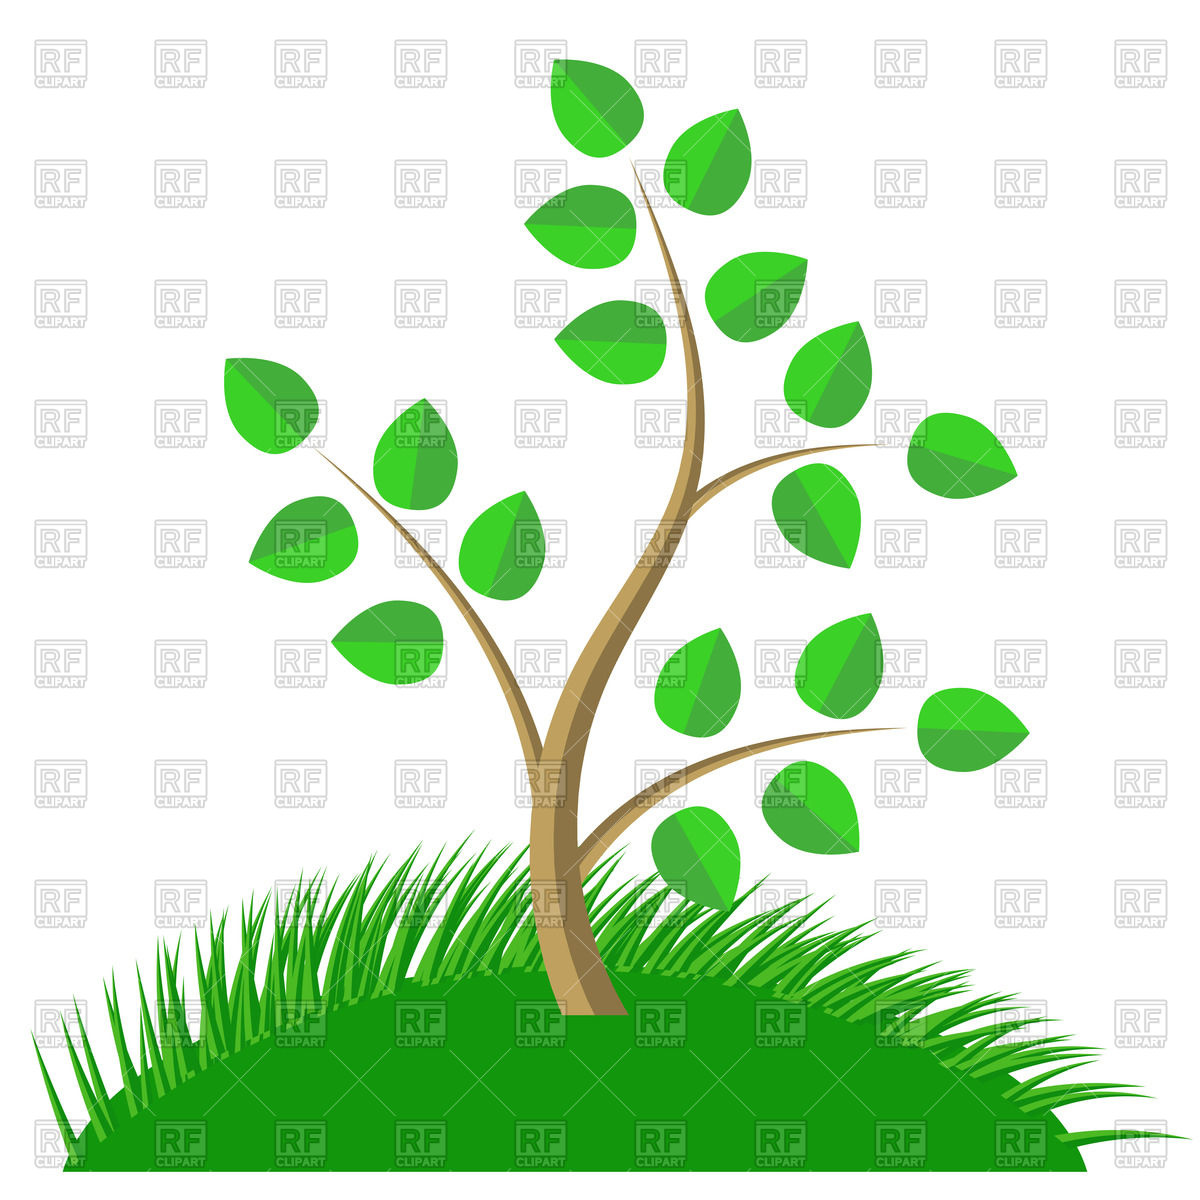 Green cartoon tree with leaves and grass Vector Image #66884.